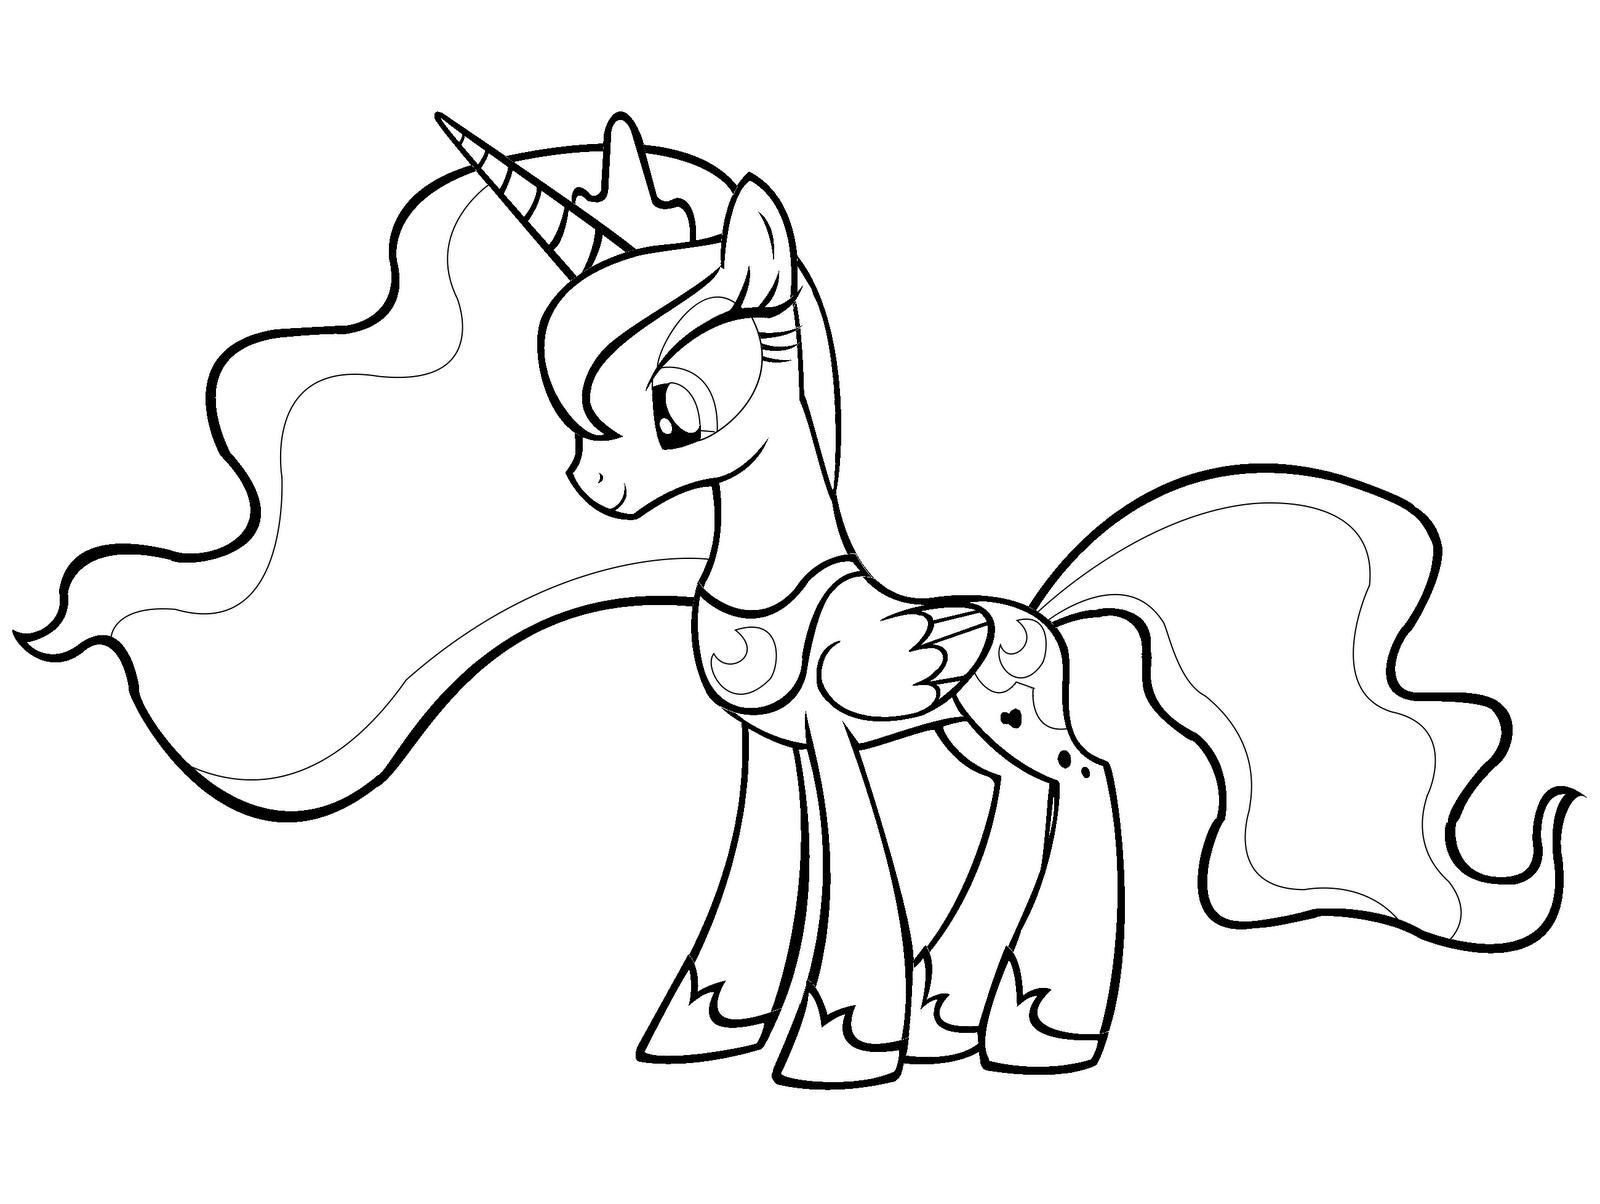 My Little Pony Coloring Pages Princess Luna : Free coloring pages of r luna